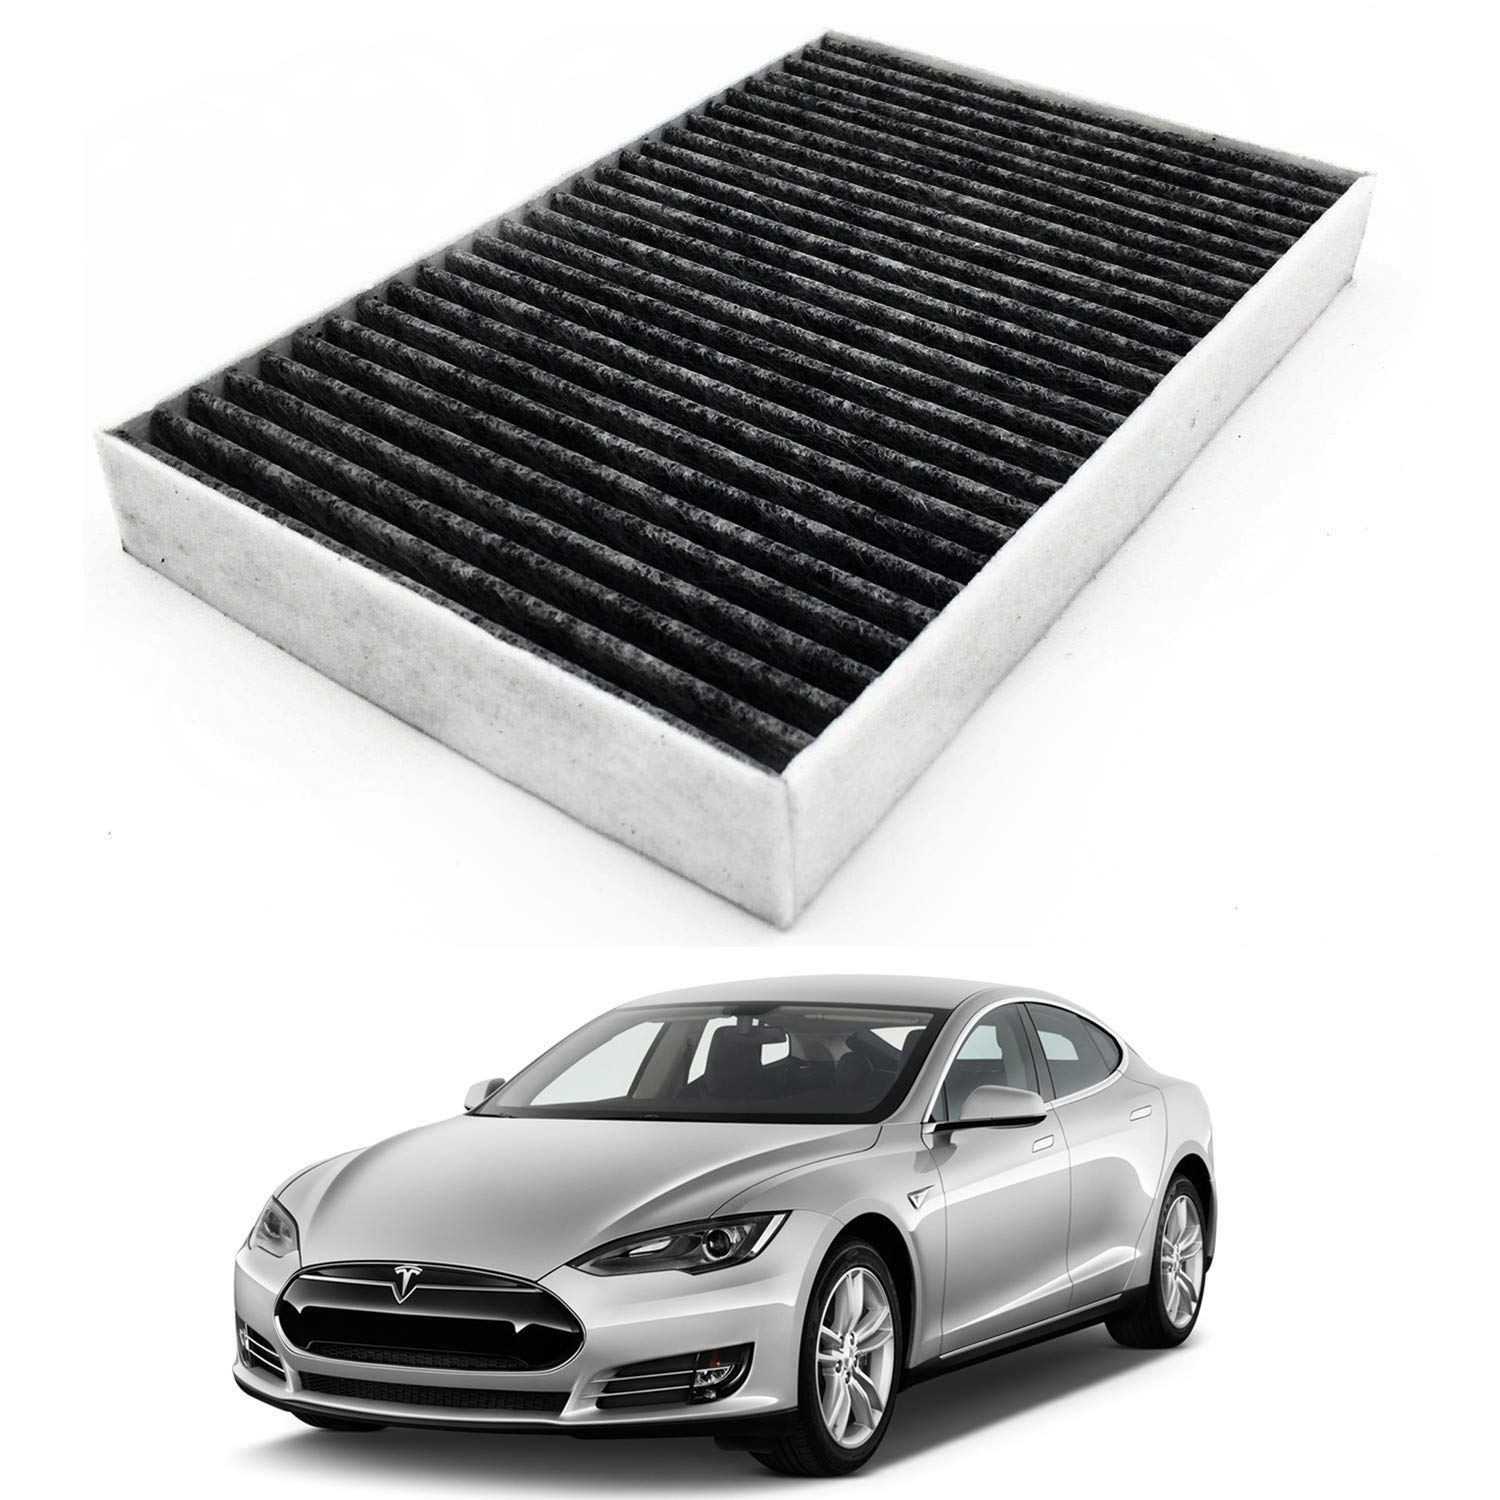 Jojomark Tesla Model S Cabin Air Filter With Activated Carbon Fit 2012 2015 Model S 1035125 00 A